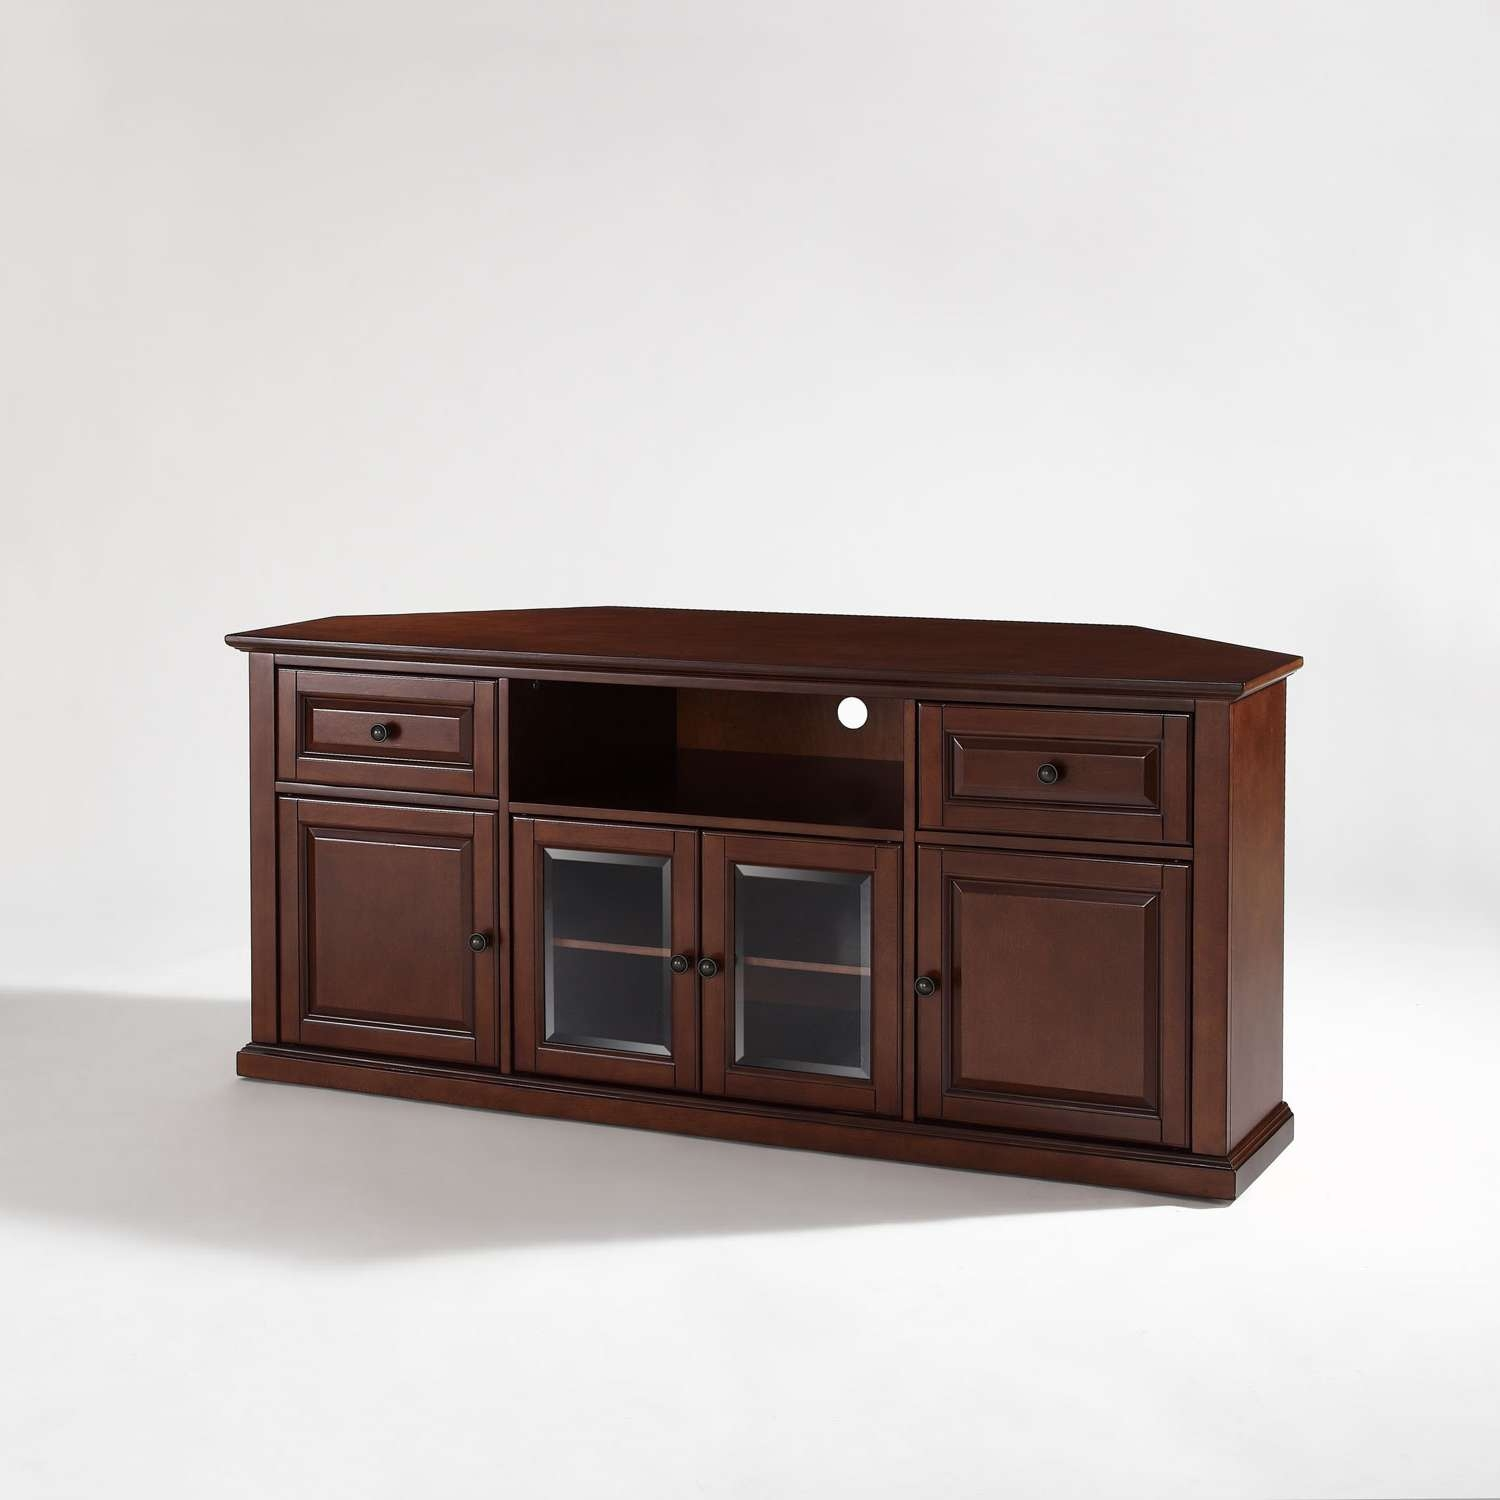 Tv Stand : Amazon Com Leick Oak Leaded Glass Corner Tvd Kitchen Throughout Solid Wood Corner Tv Stands (View 11 of 20)